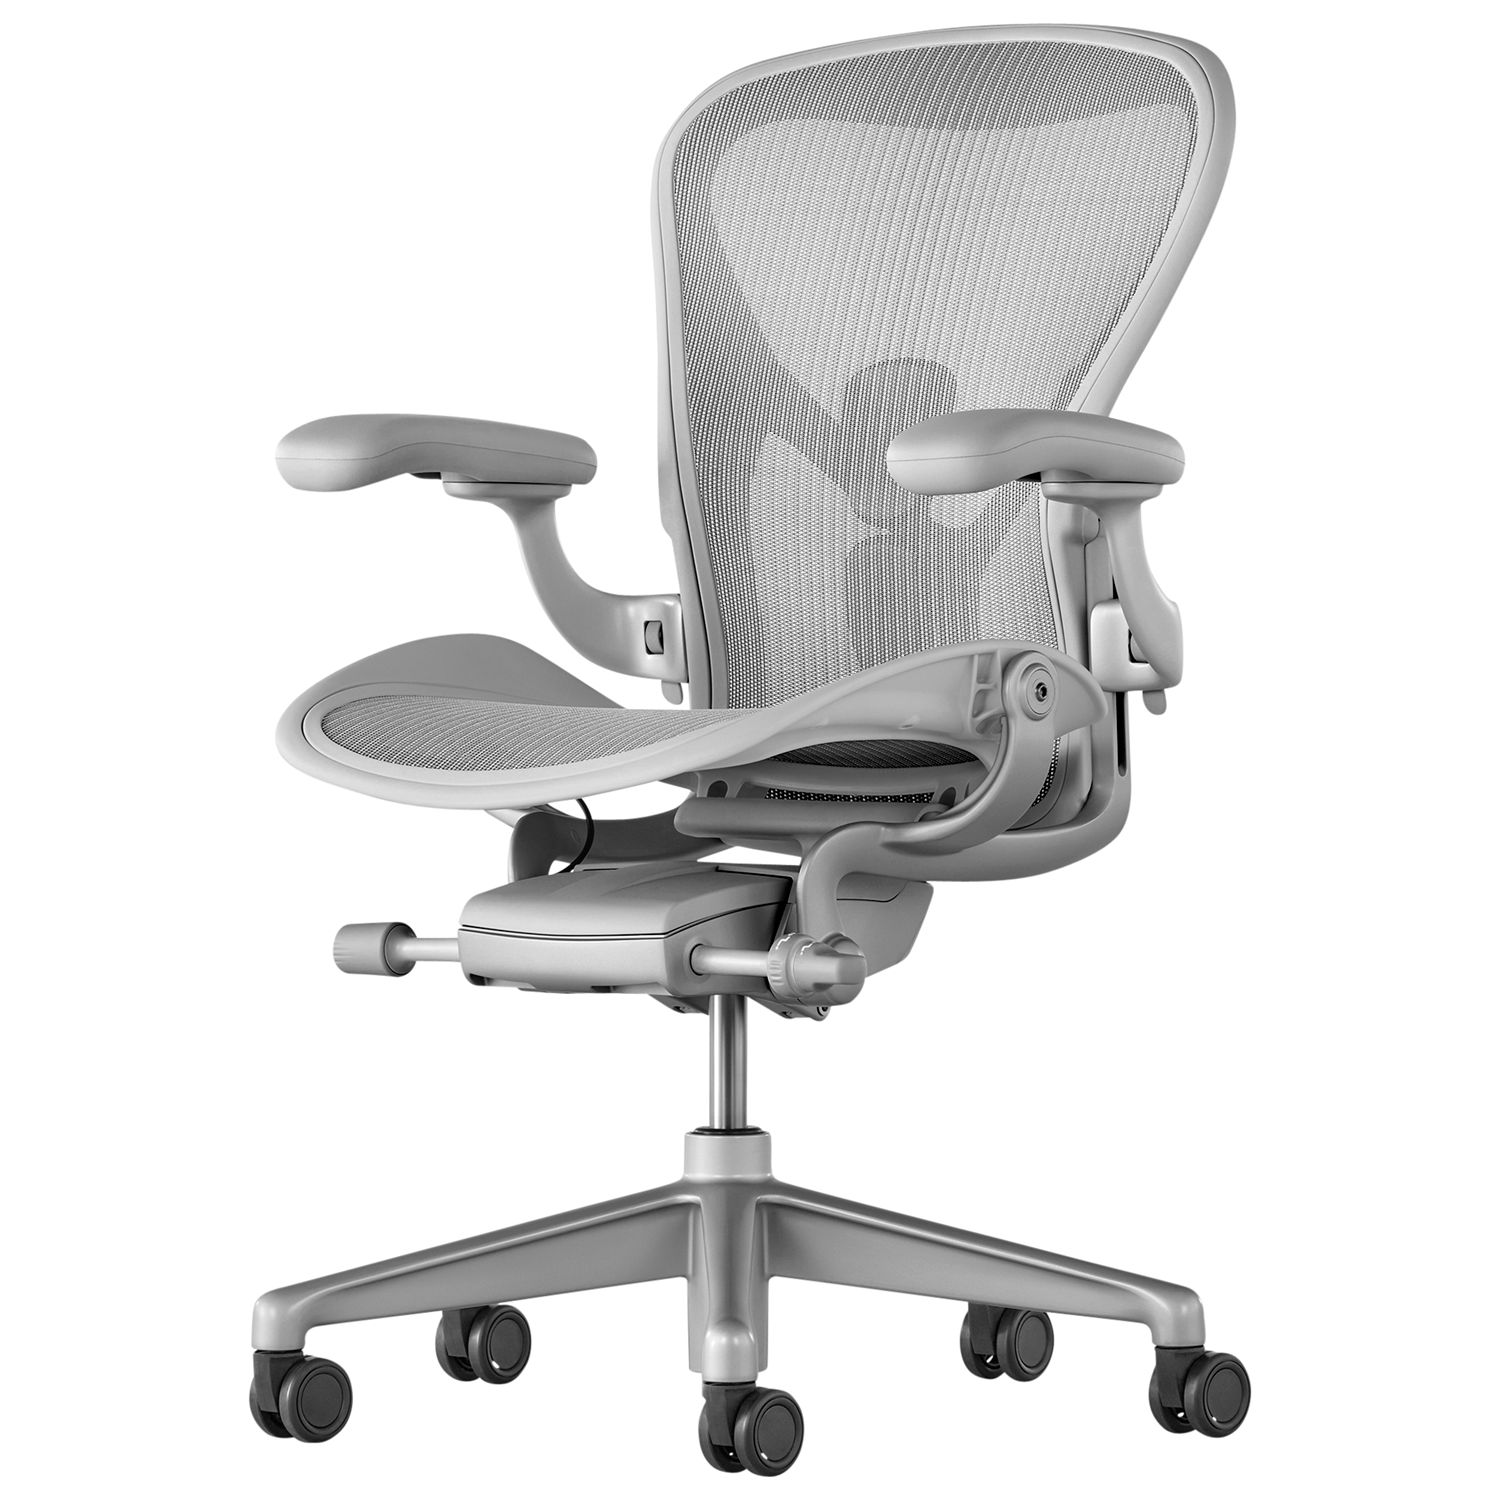 Herman Miller Herman Miller Aeron Office Chair, Mineral